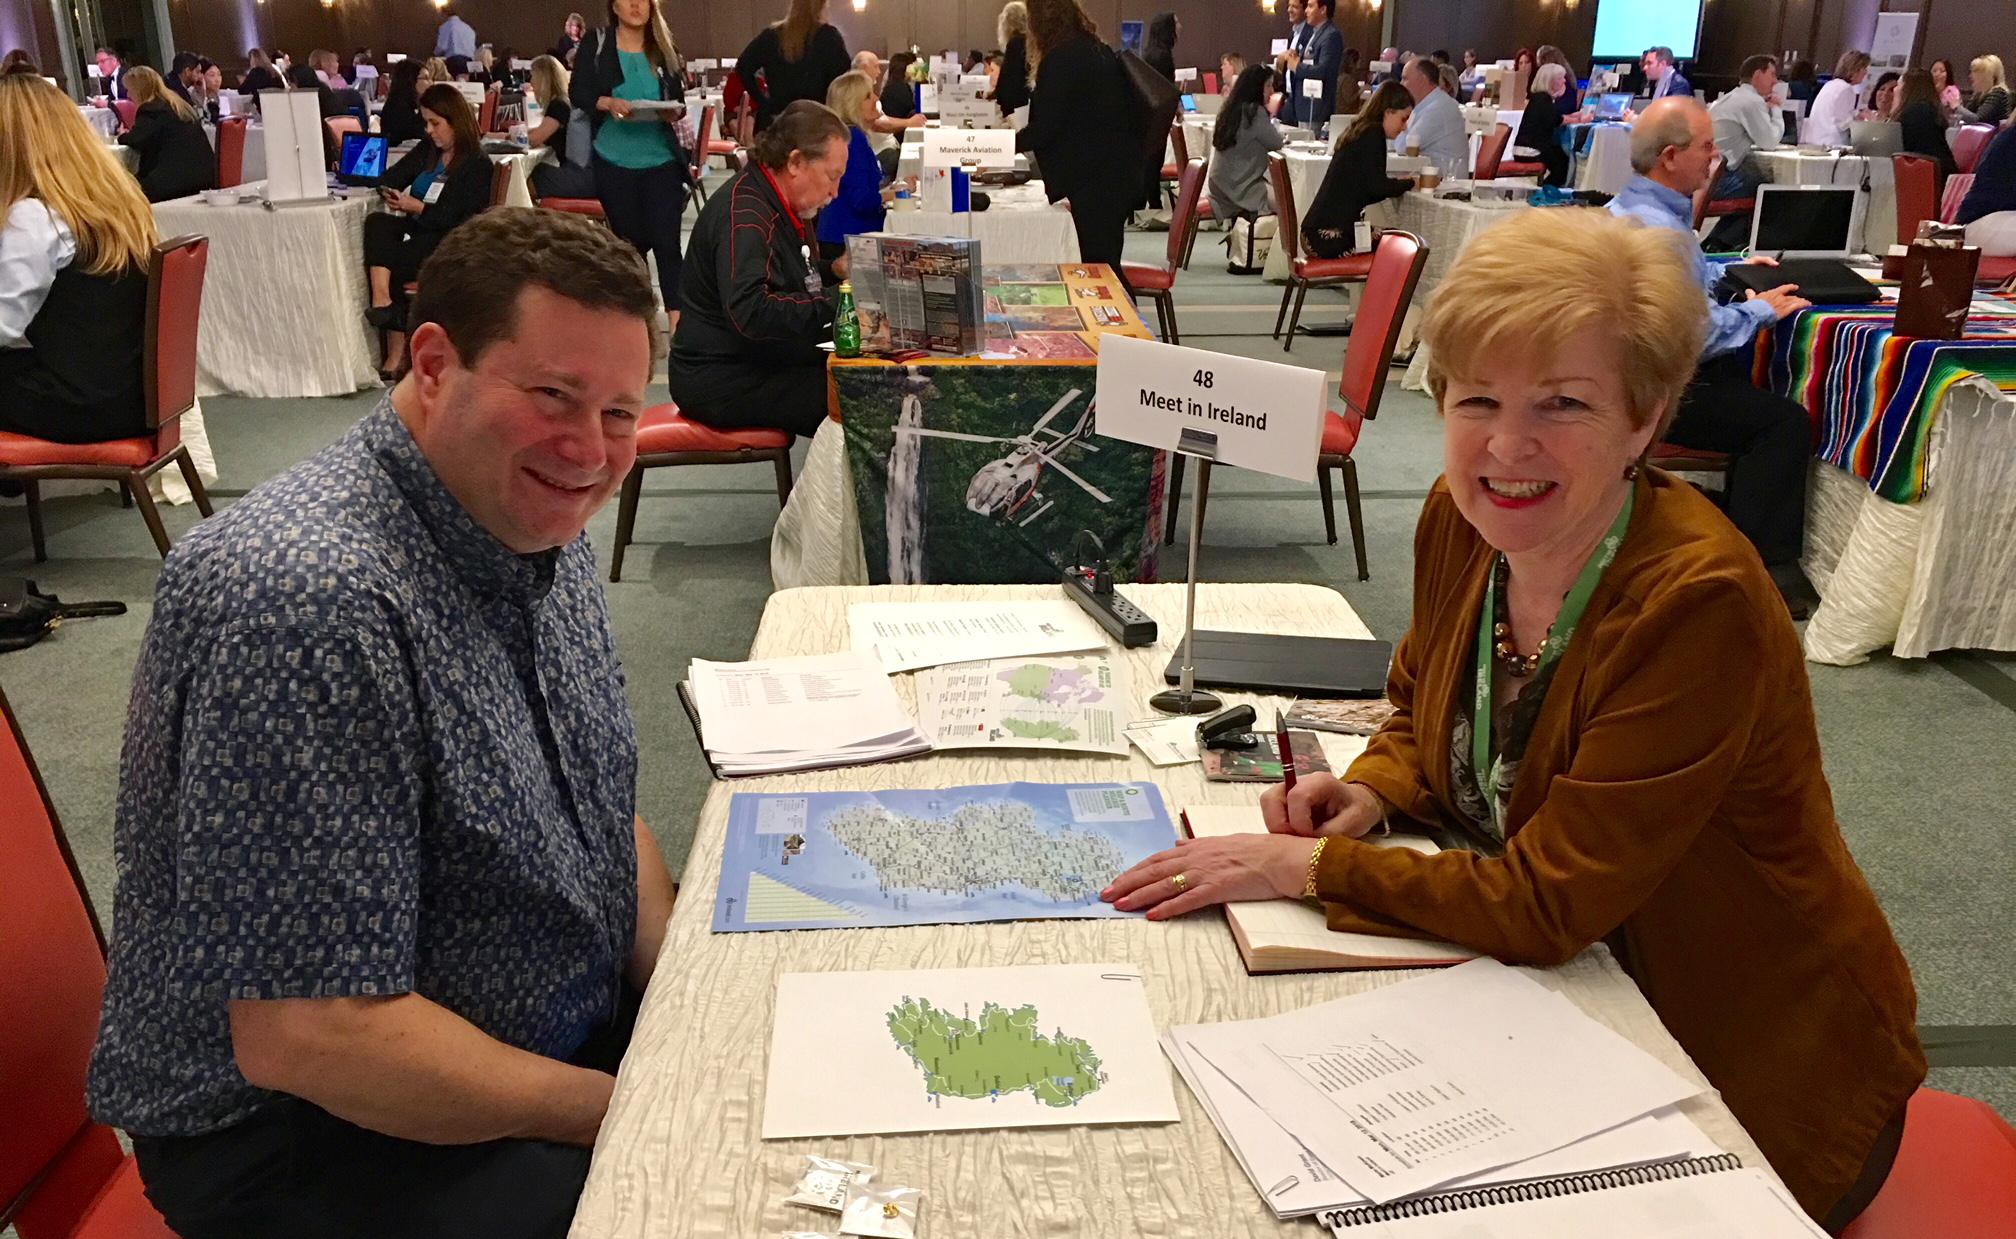 REPRO FREE 12/03/2018, Las Vegas – Ireland is being promoted as a top destination for business tourism this week, at Incentive Live in Las Vegas.  PIC SHOWS: Michael Some, Achievement Incentives & Meetings, meeting with Marie McKown, Tourism Ireland, at Incentive Live in Las Vegas.  Pic – Tourism Ireland (no repro fee) Further press info – Sinéad Grace, Tourism Ireland 087 685 9027